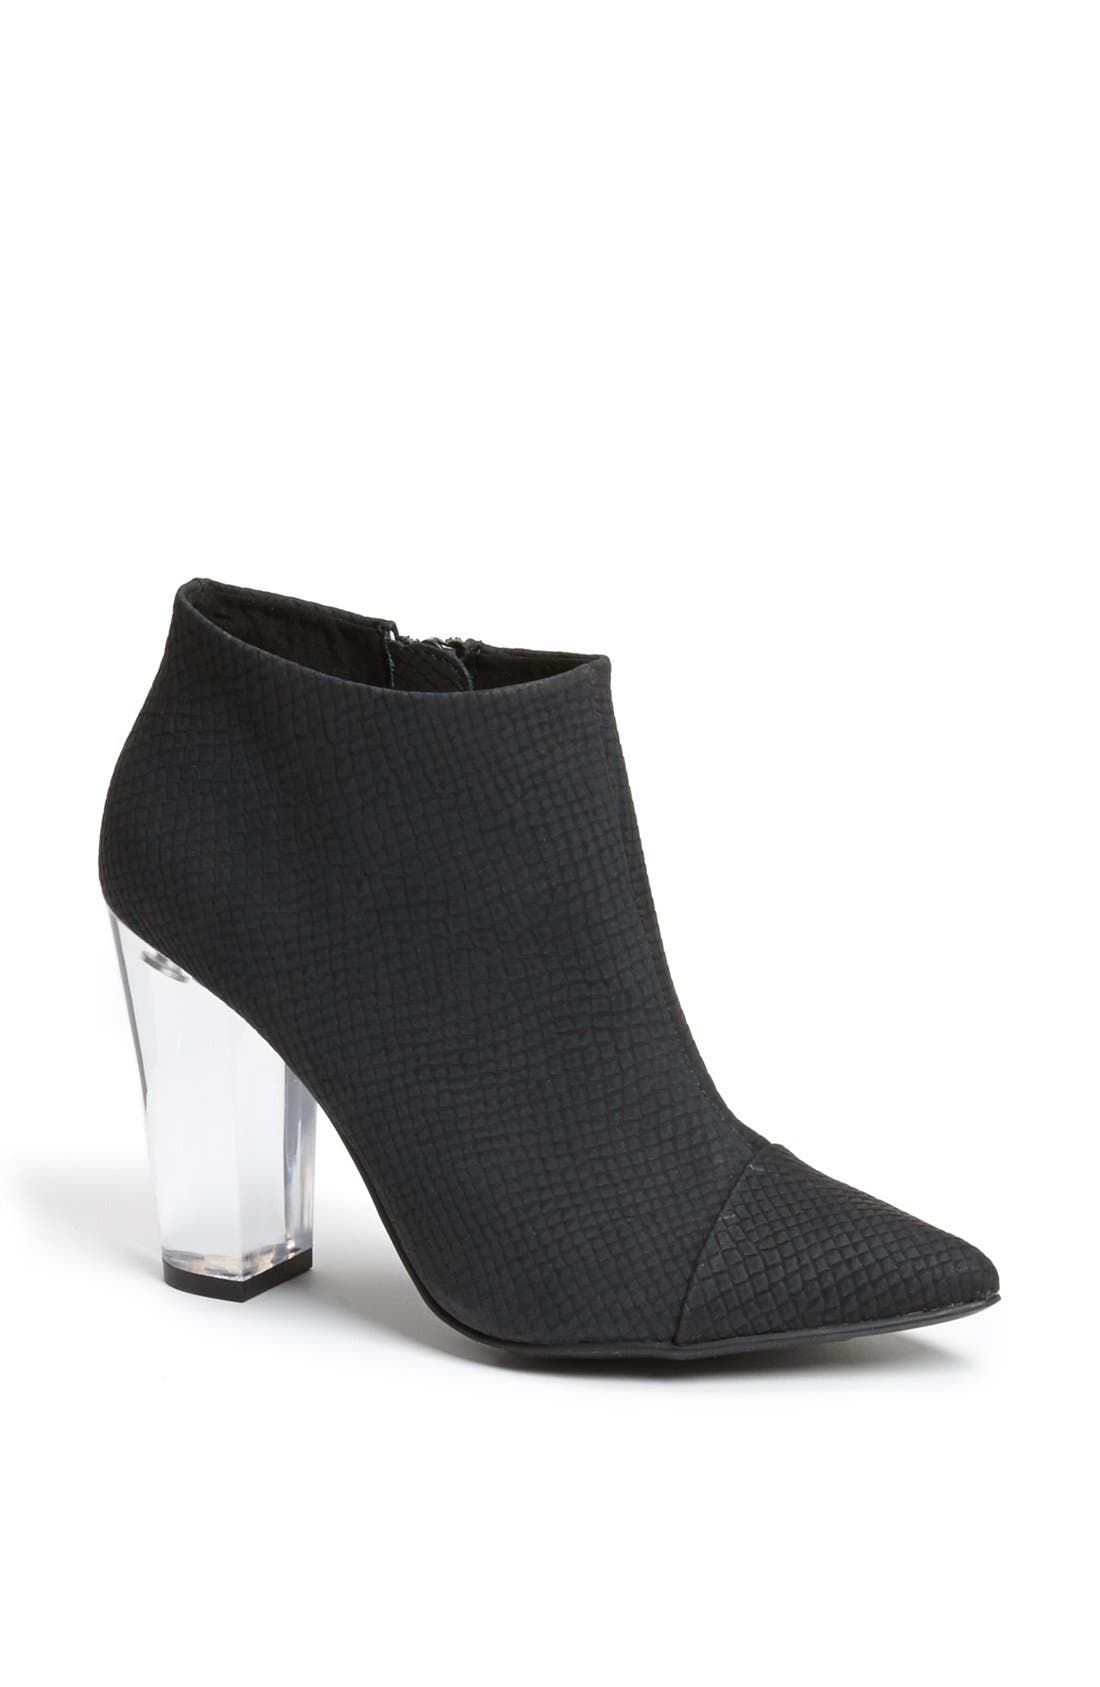 Main Image - Tildon 'Fleeting' Pointy Toe Bootie